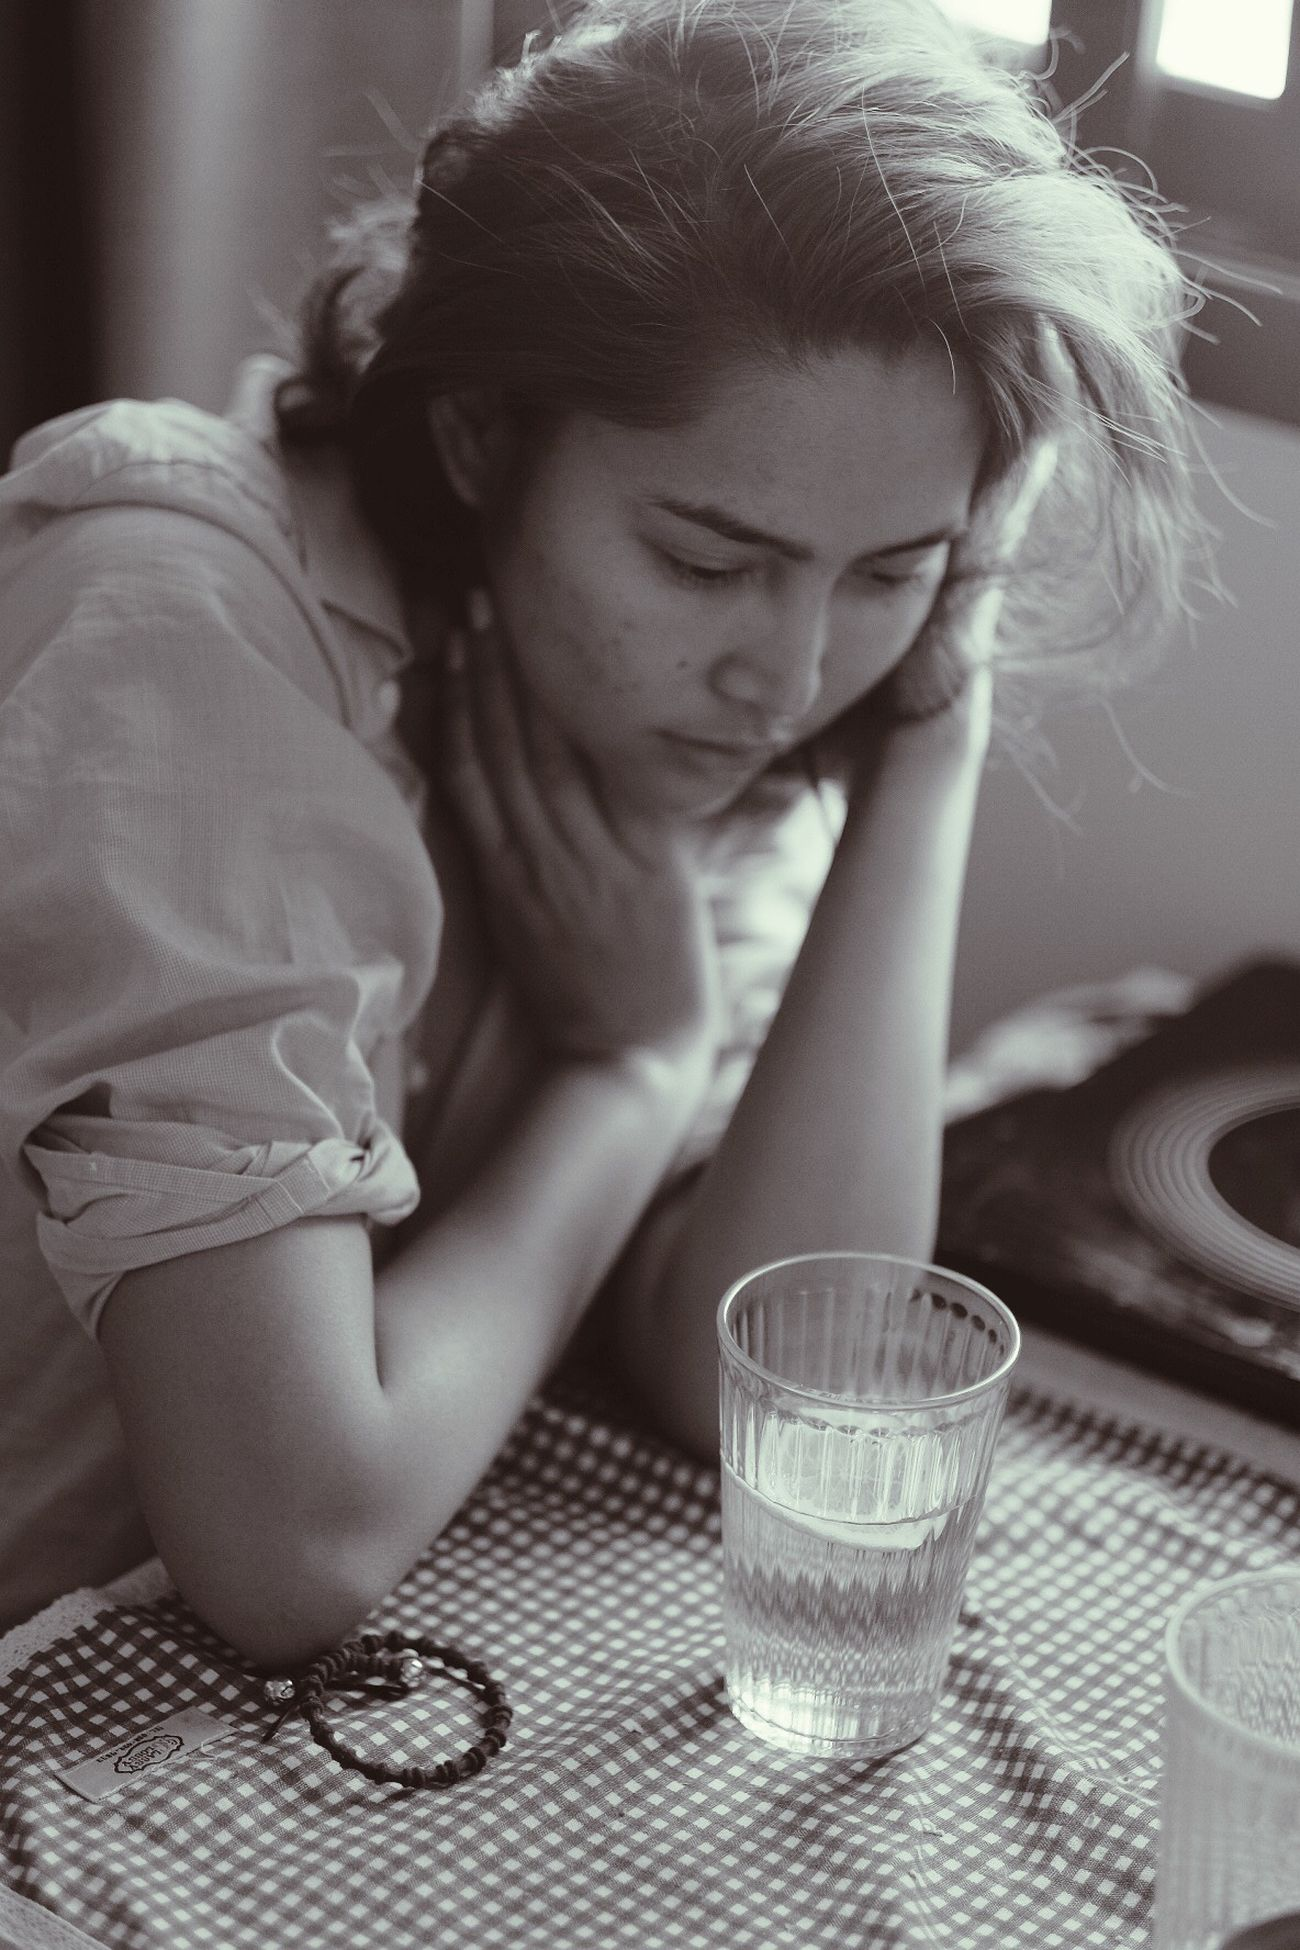 Drinking Glass Sitting Drinking Drink One Person Young Adult Table Indoors  Food And Drink One Woman Only Women One Young Woman Only Depression - Sadness Only Women Young Women Adult People Close-up Adults Only Day